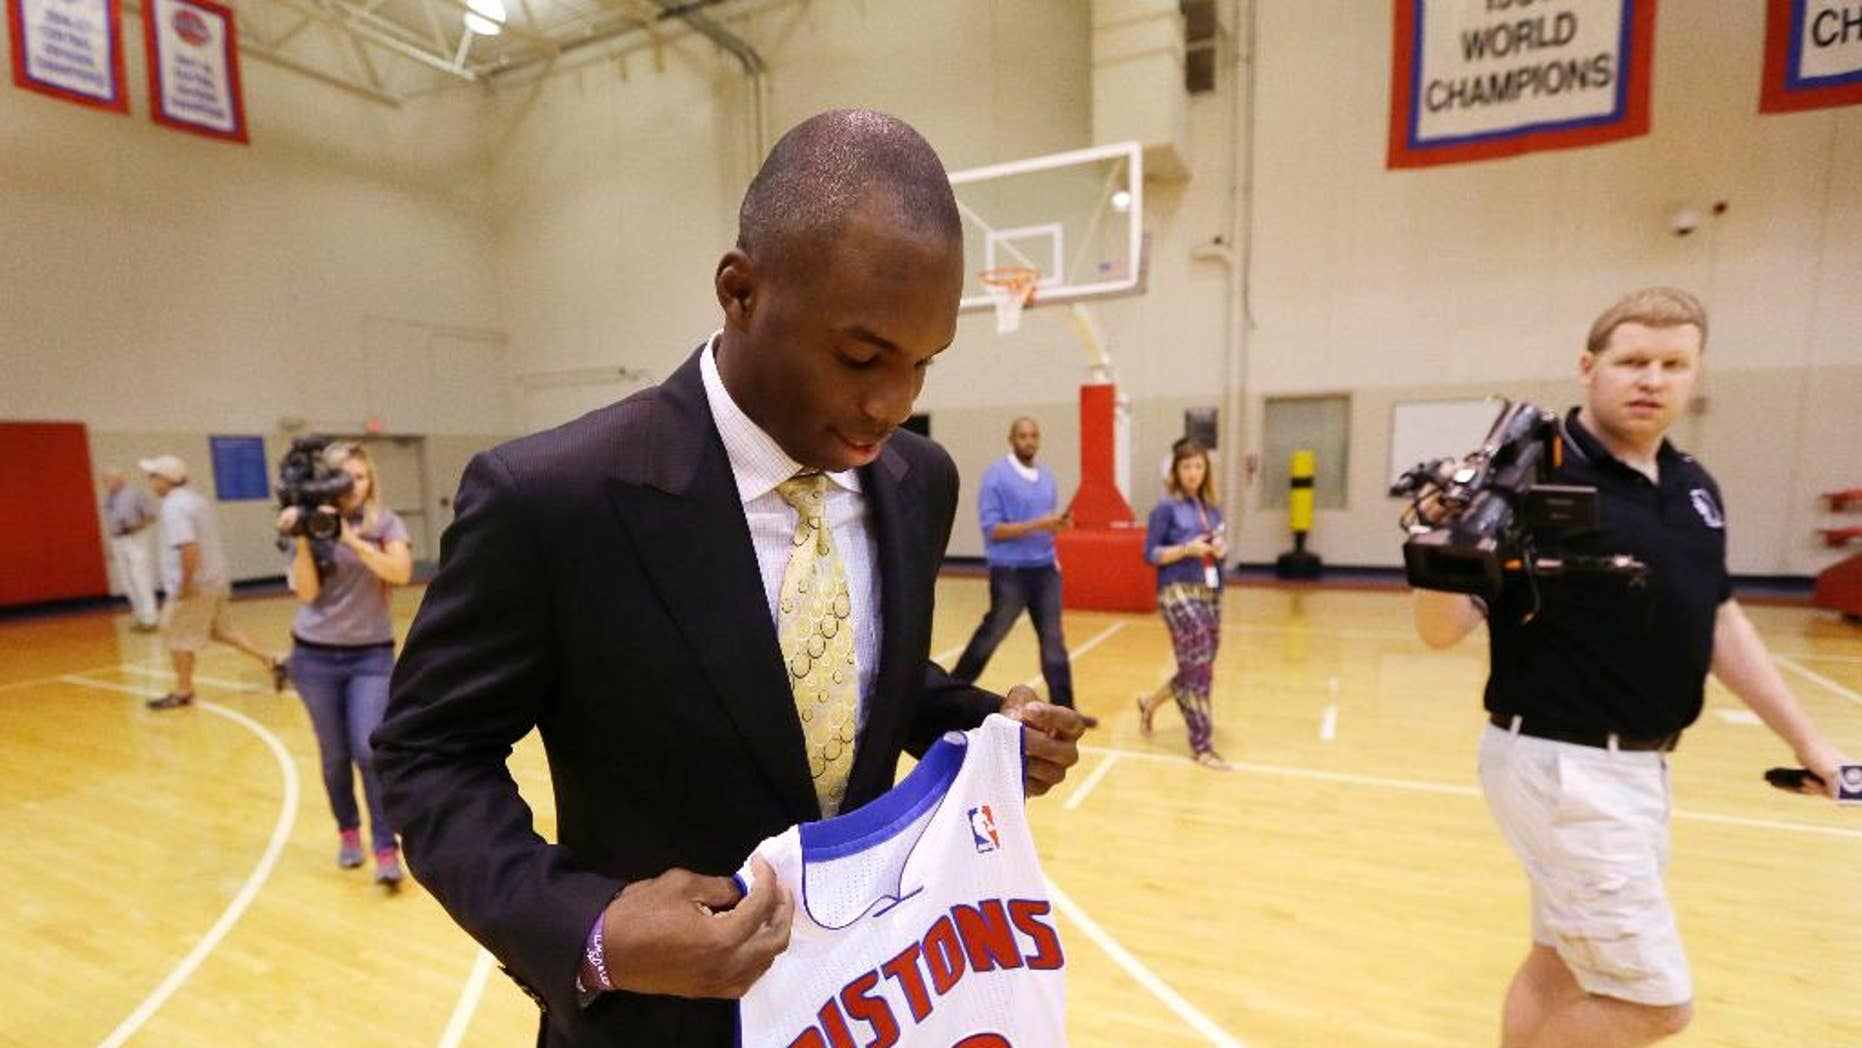 Detroit Pistons guard Jodie Meeks is followed by the media as he holds his new jersey at the team's practice facility in Auburn Hills, Mich., Monday, July 14, 2014. The Pistons hope he can provide some much-needed perimeter shooting this season under new coach Stan Van Gundy. (AP Photo/Carlos Osorio)